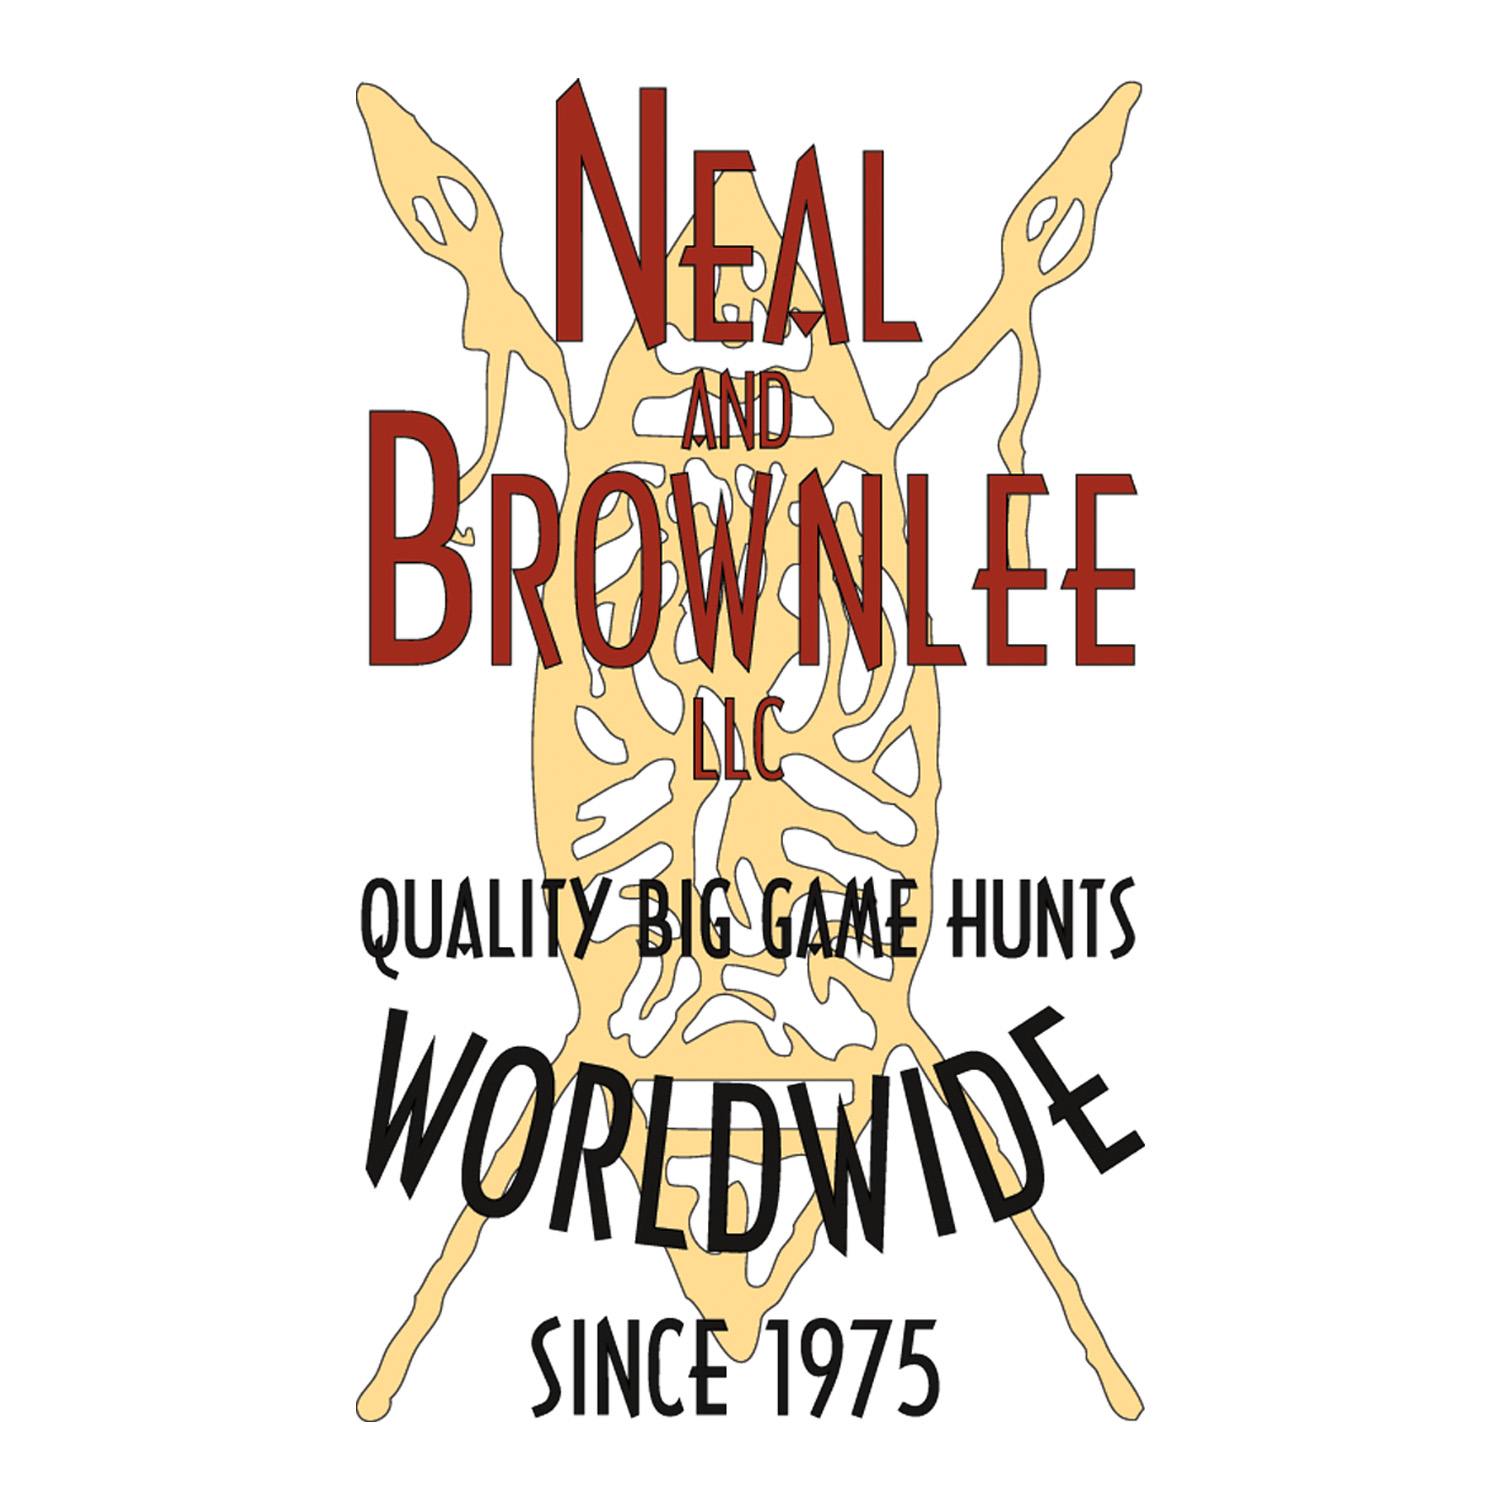 Sponsor Logo - Neal and Brownlee.jpg